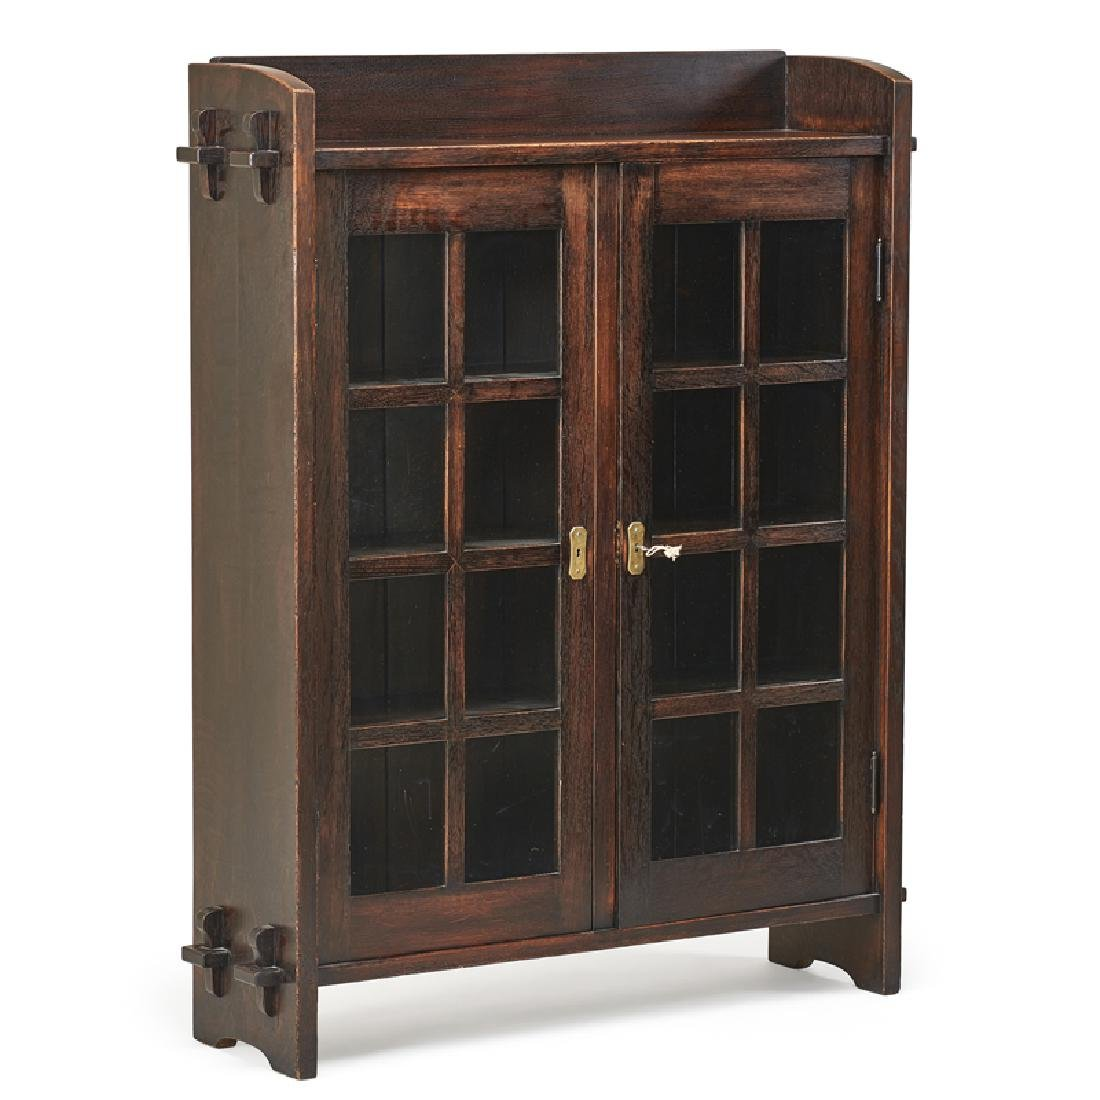 Gustav Stickley Prices 4775 Auction Price Results